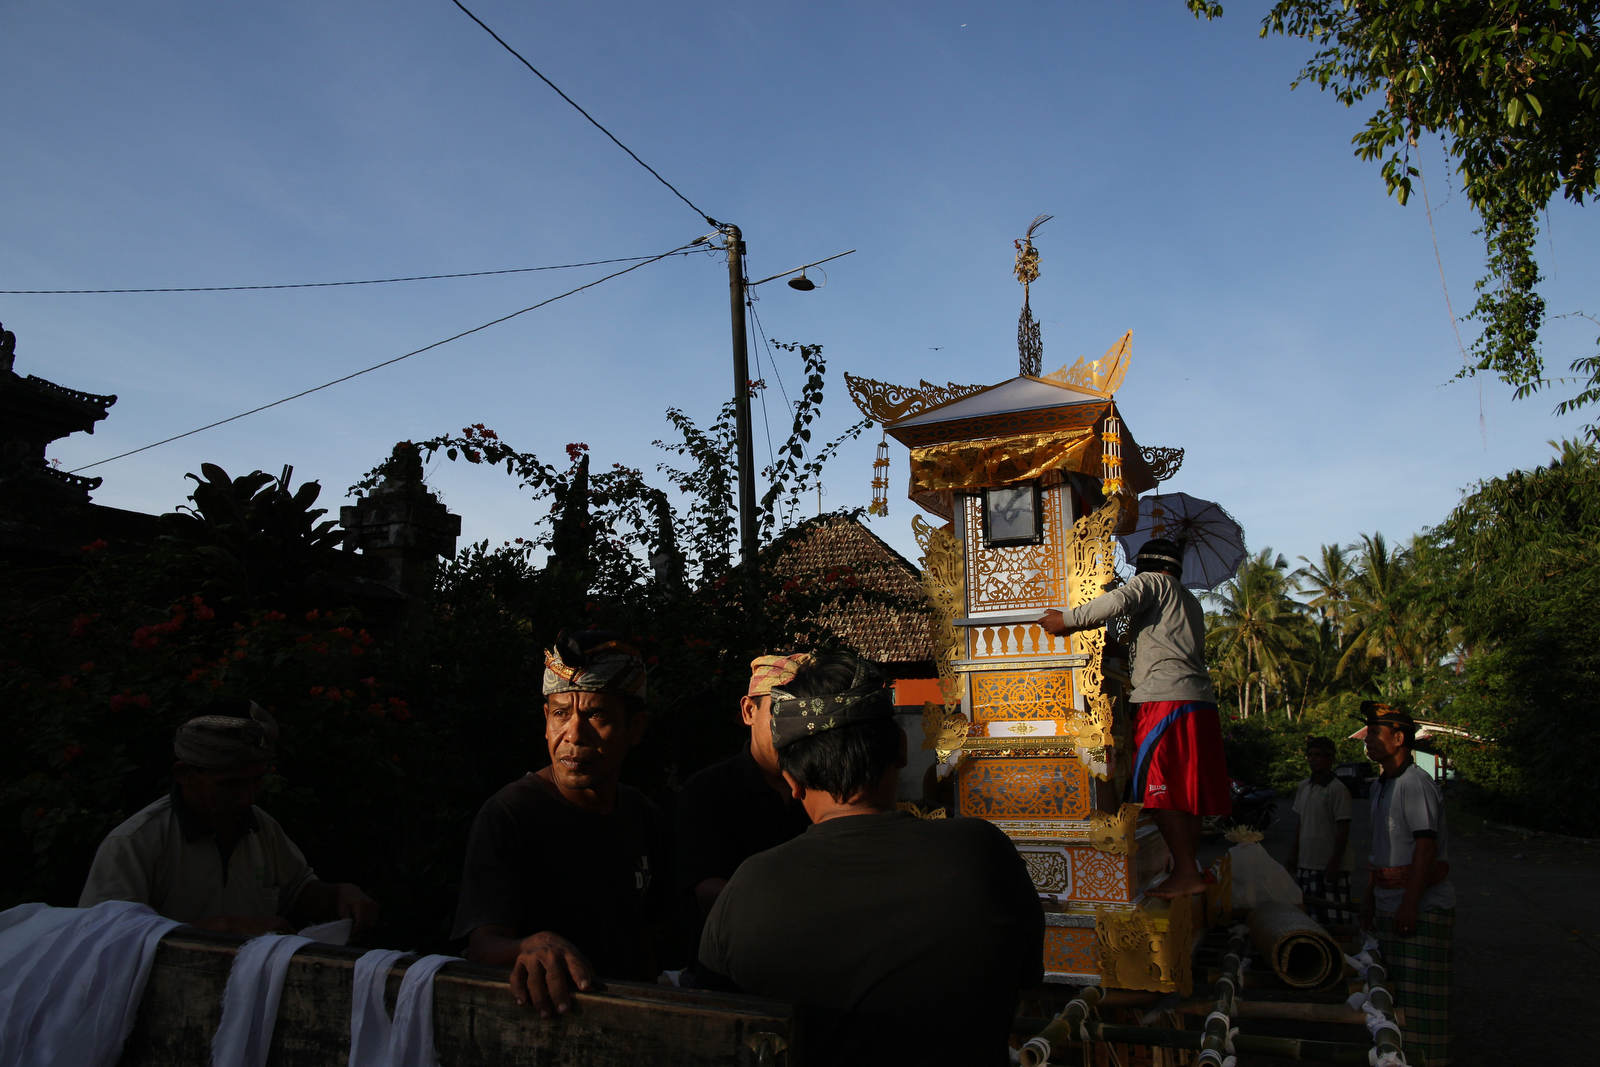 A float is prepared for the funeral of a high priestess in Bali, Indonesia.